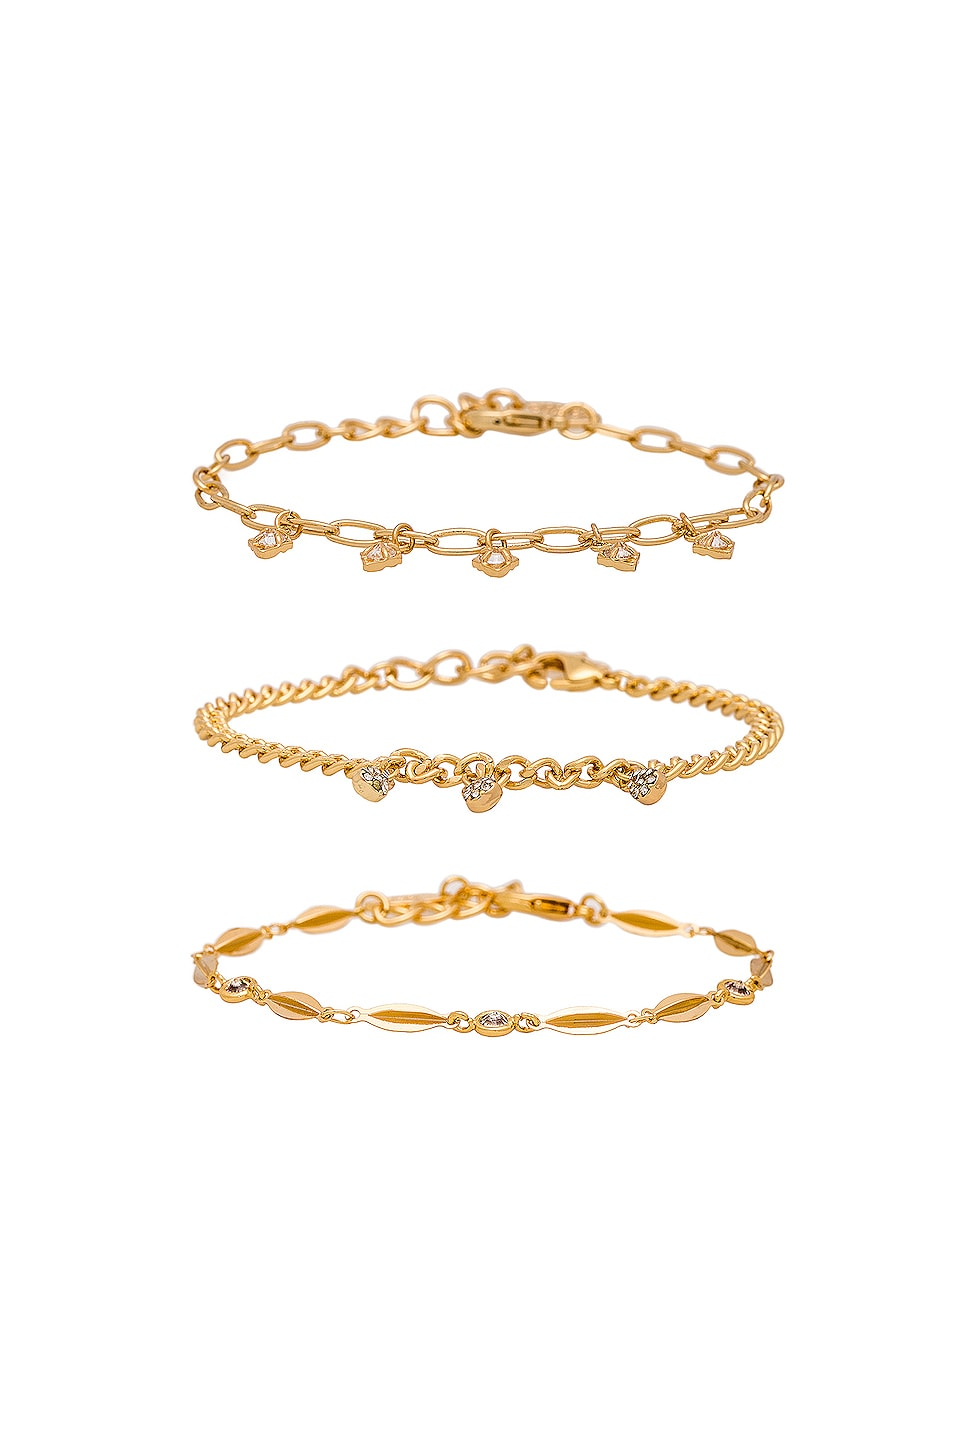 Ettika Dainty Bracelet Set in Gold